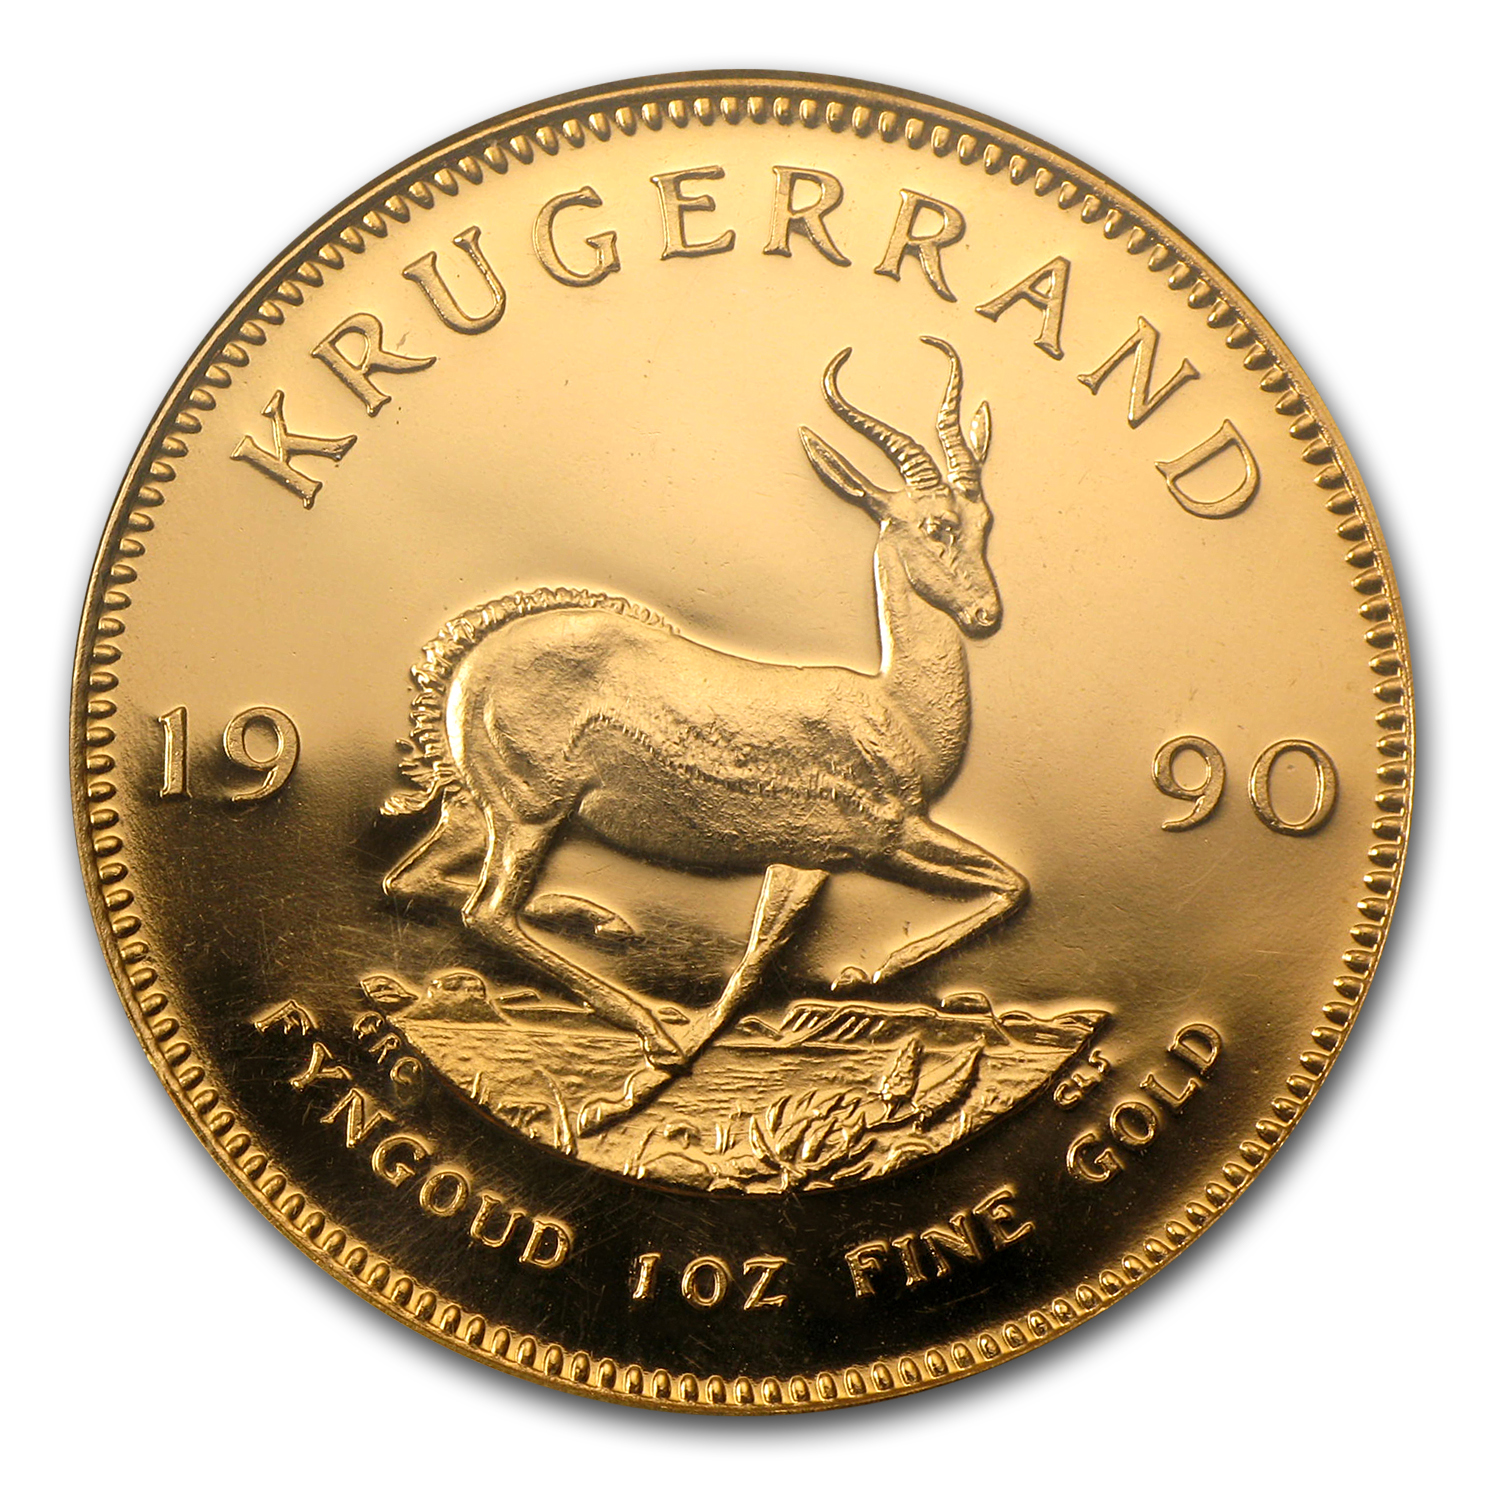 1990 South Africa 1 oz Proof Gold Krugerrand